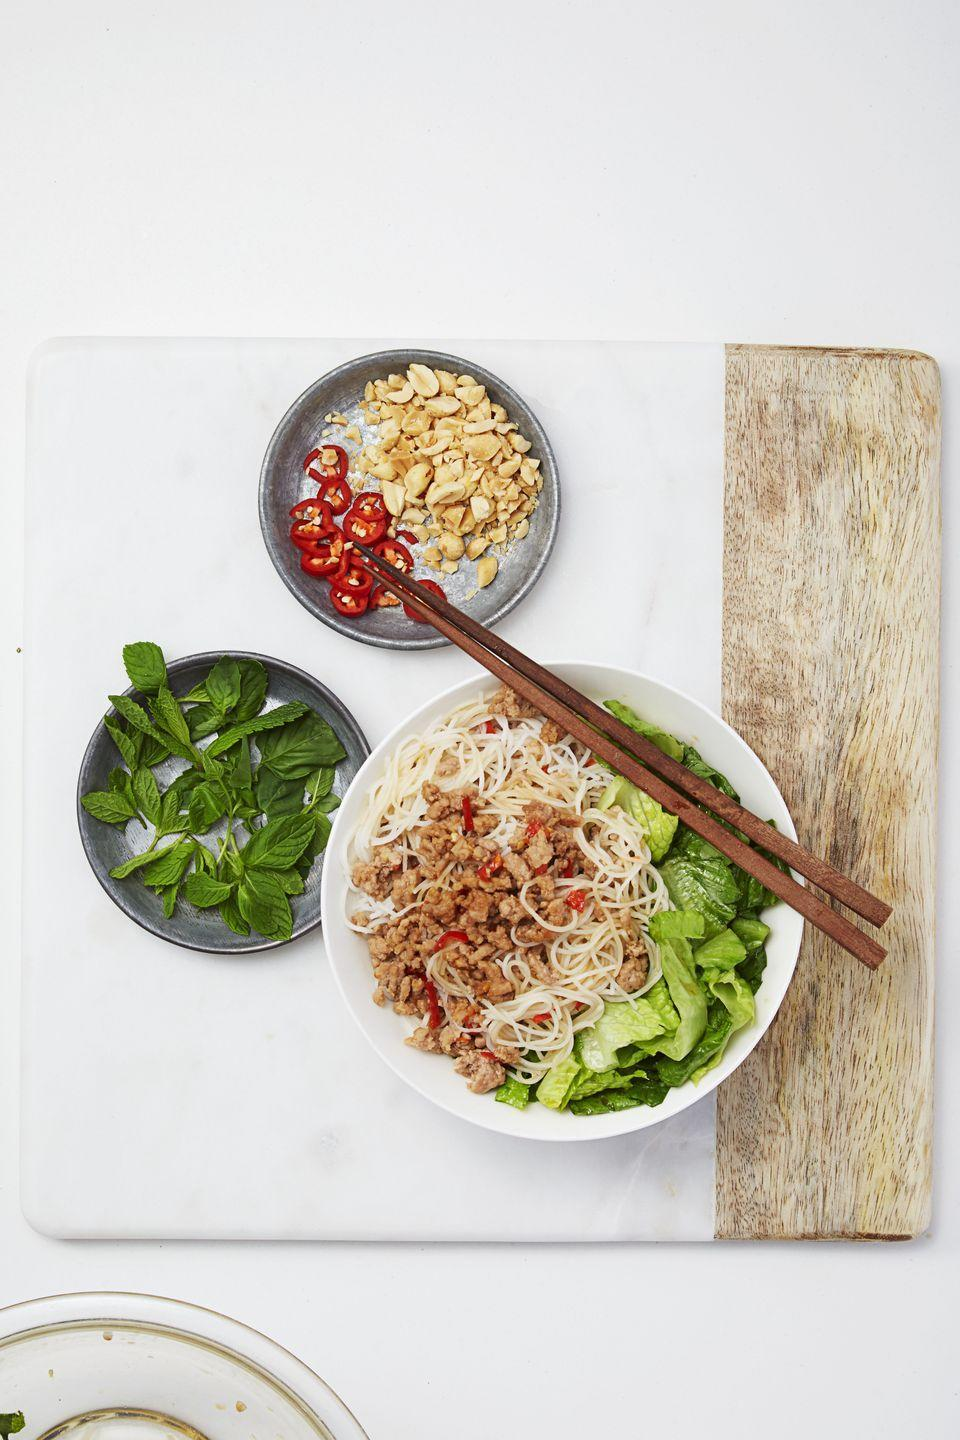 """<p>The secret to this filling, flavorful salad? Thin rice noodles (a.k.a. <a href=""""https://www.goodhousekeeping.com/food-recipes/cooking/tips/a17291/noodling-around-1101/"""" rel=""""nofollow noopener"""" target=""""_blank"""" data-ylk=""""slk:vermicelli"""" class=""""link rapid-noclick-resp"""">vermicelli</a>) that cook quickly and absorb sauce easily.</p><p><a href=""""https://www.goodhousekeeping.com/food-recipes/a32684/vietnamese-noodle-salad/ """" rel=""""nofollow noopener"""" target=""""_blank"""" data-ylk=""""slk:Get the recipe for Vietnamese Noodle Salad »"""" class=""""link rapid-noclick-resp""""><em>Get the recipe for Vietnamese Noodle Salad »</em></a> </p>"""